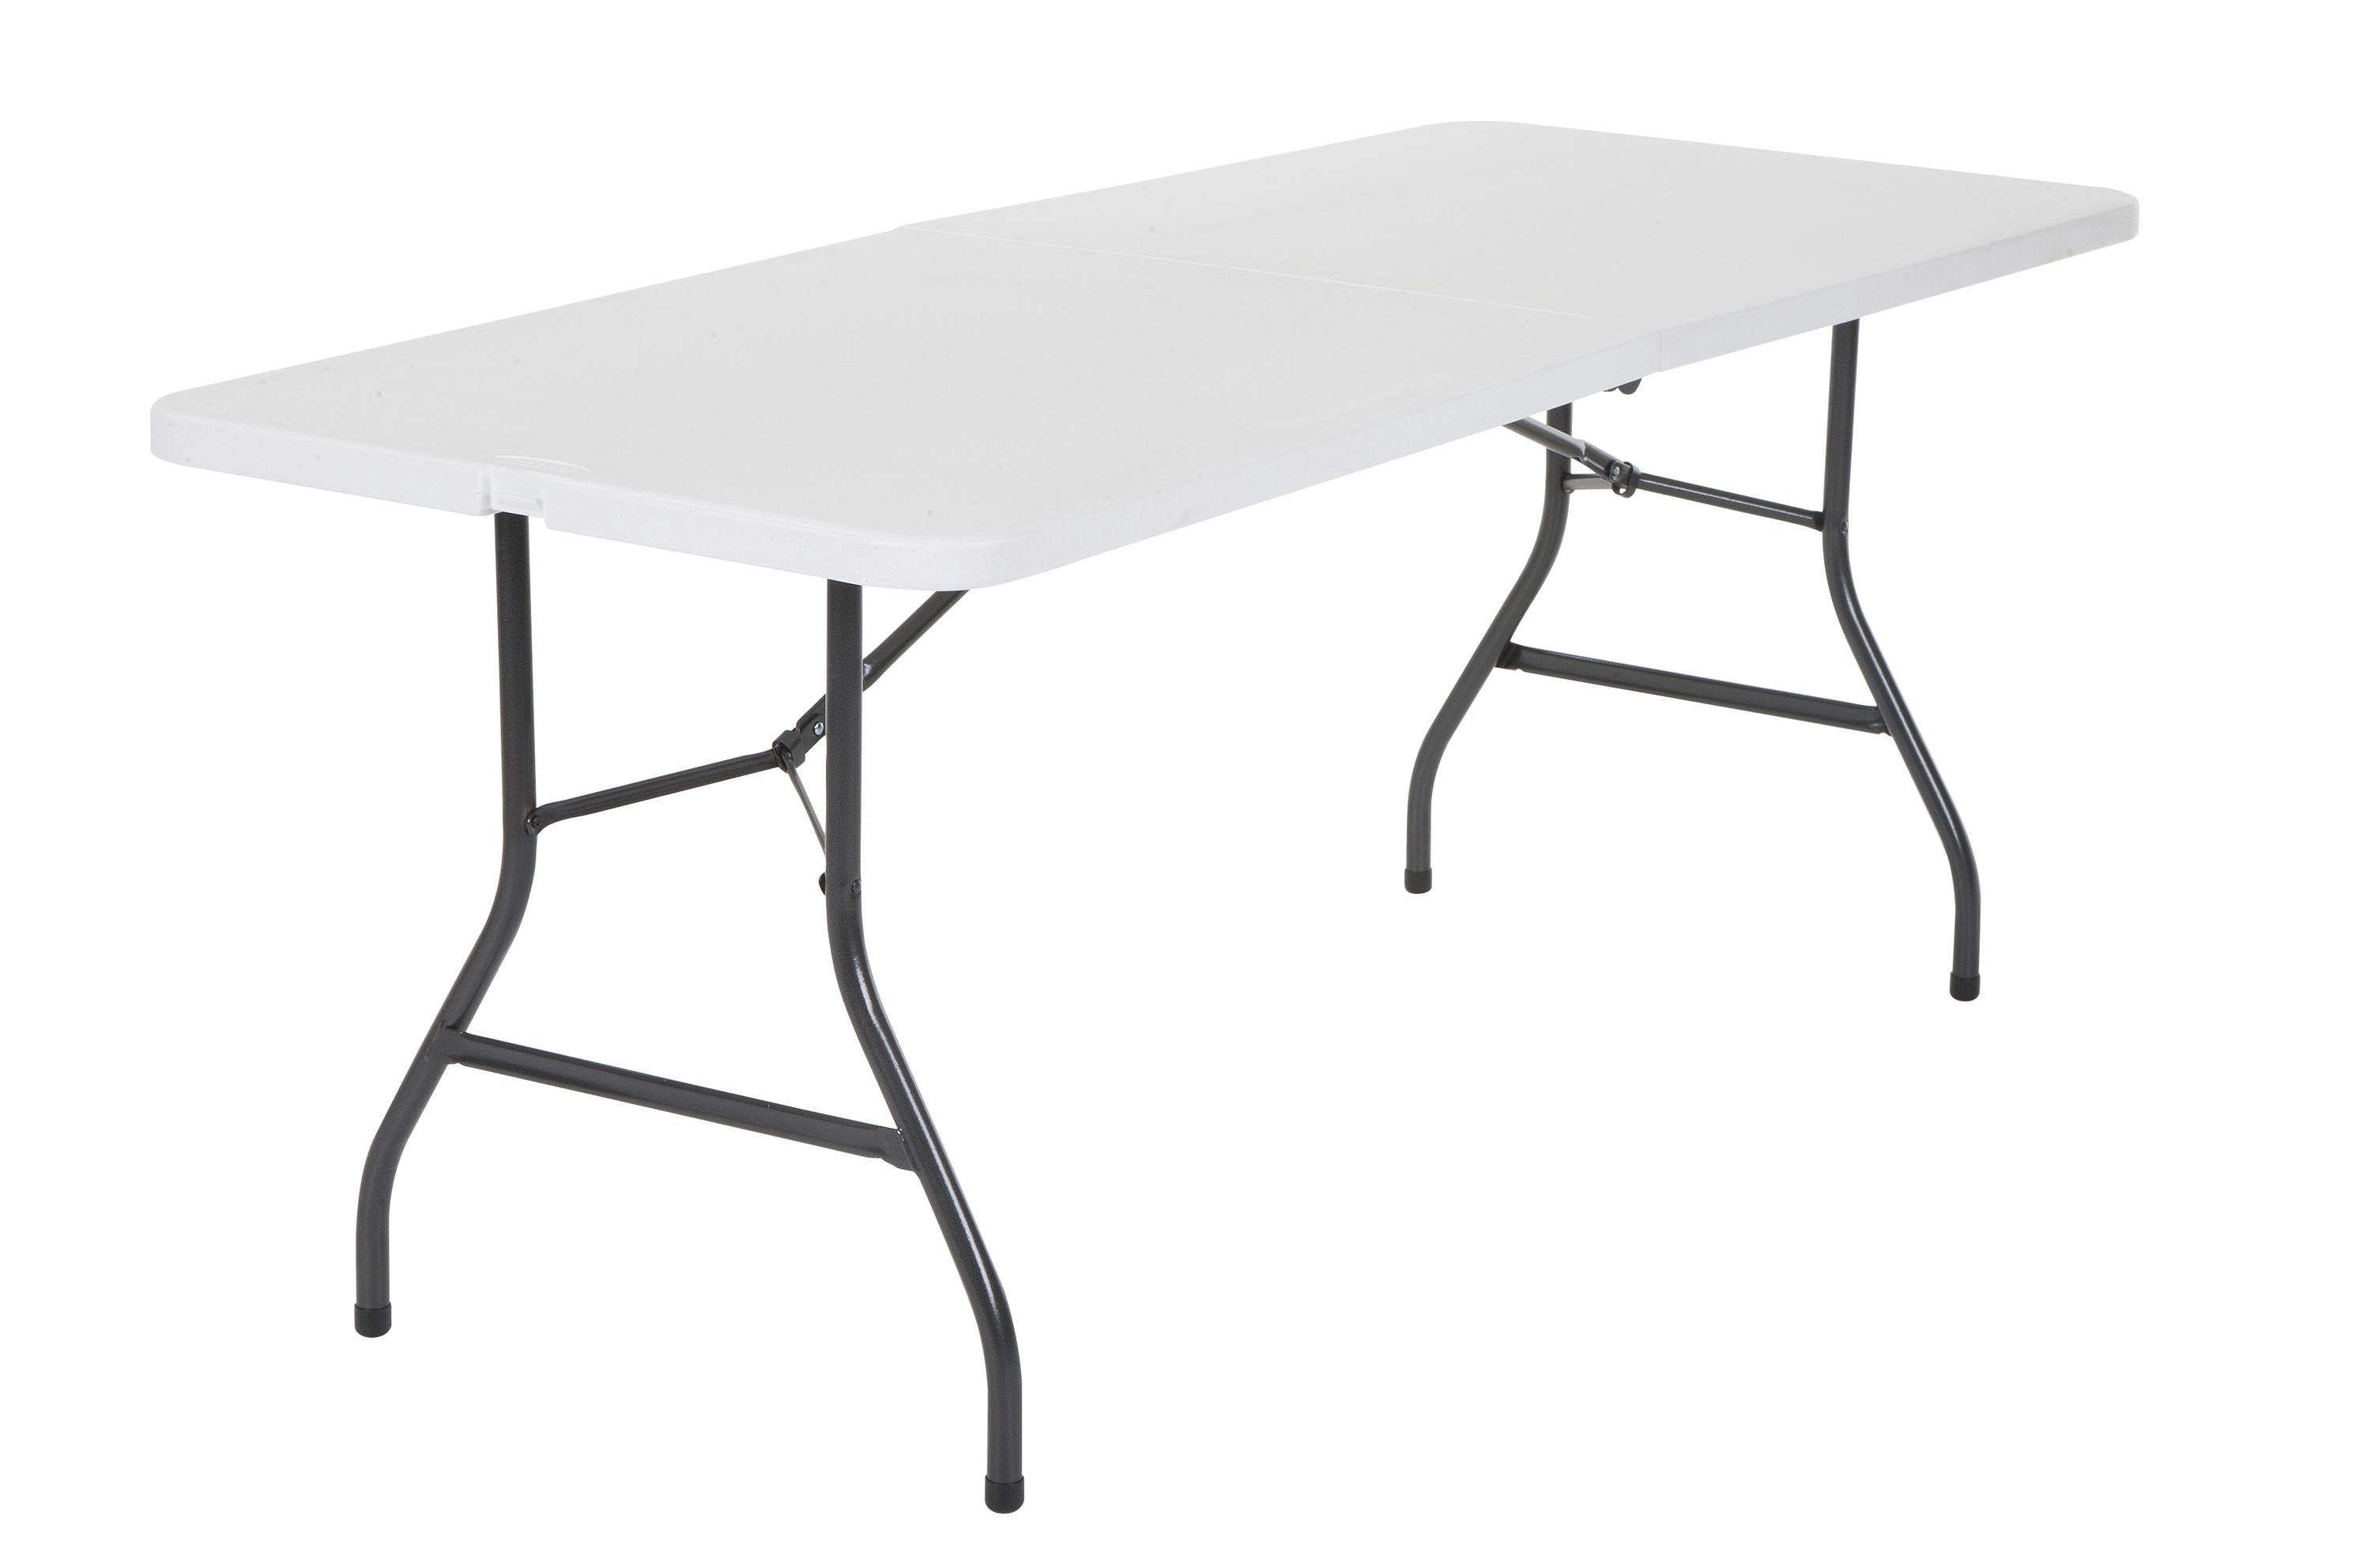 Outdoor Folding Camping Table Square Rectangle Portable From Aluminium Steel